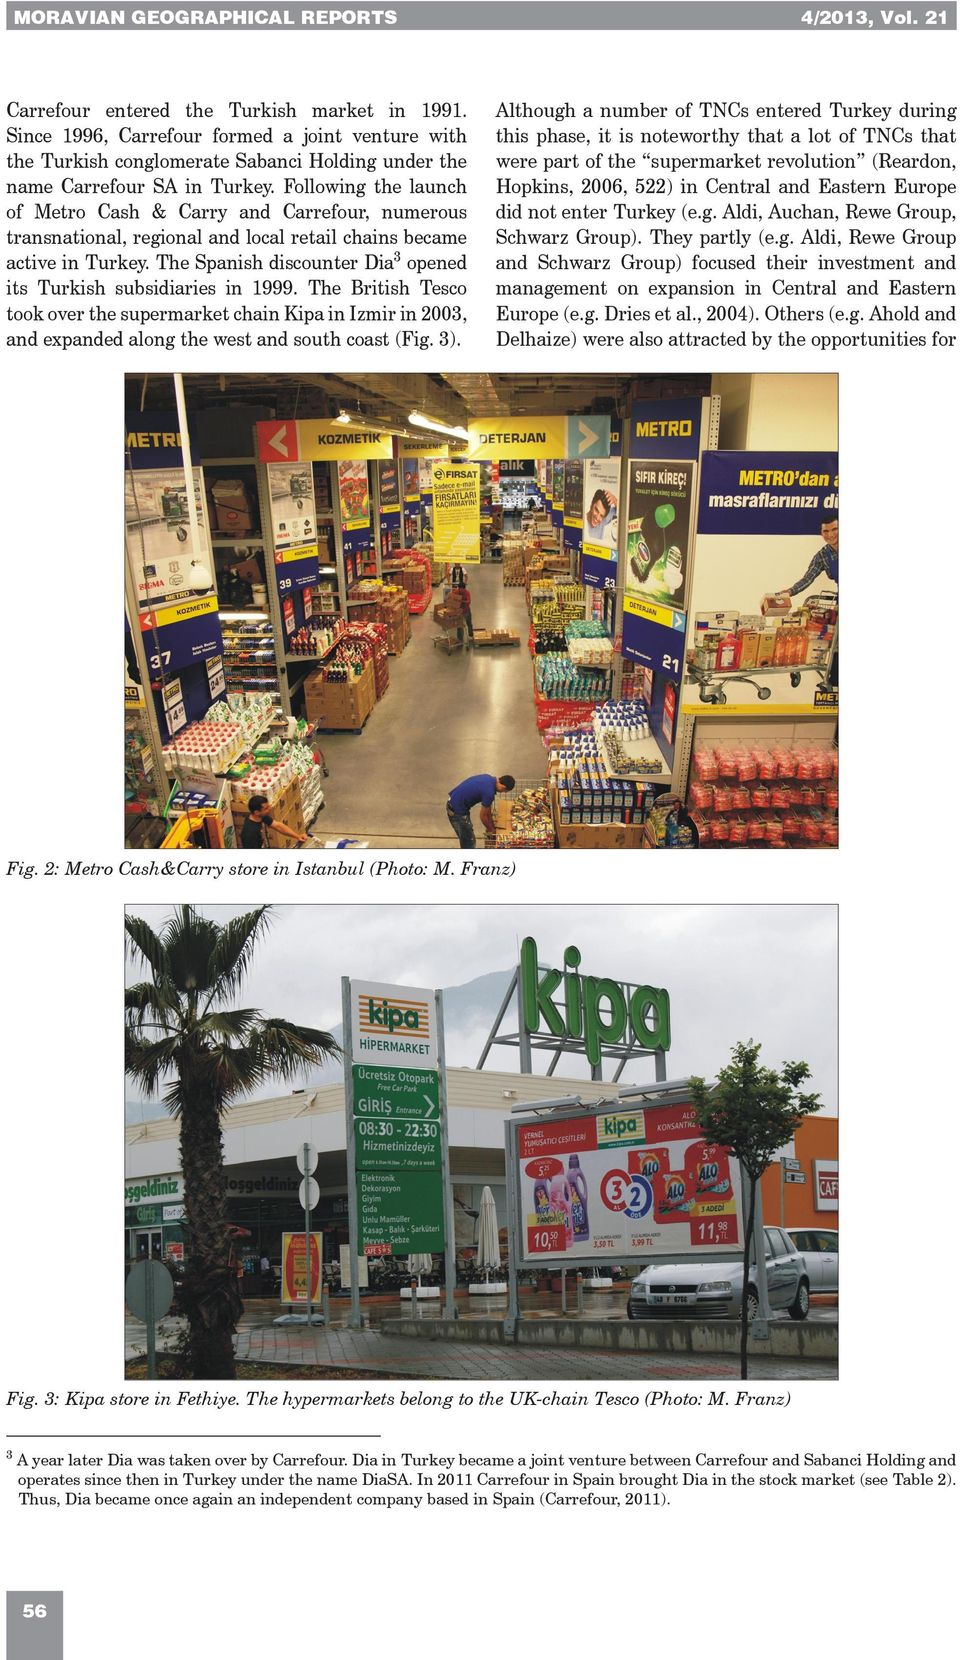 Following the launch of Metro Cash & Carry and Carrefour, numerous transnational, regional and local retail chains became active in Turkey.